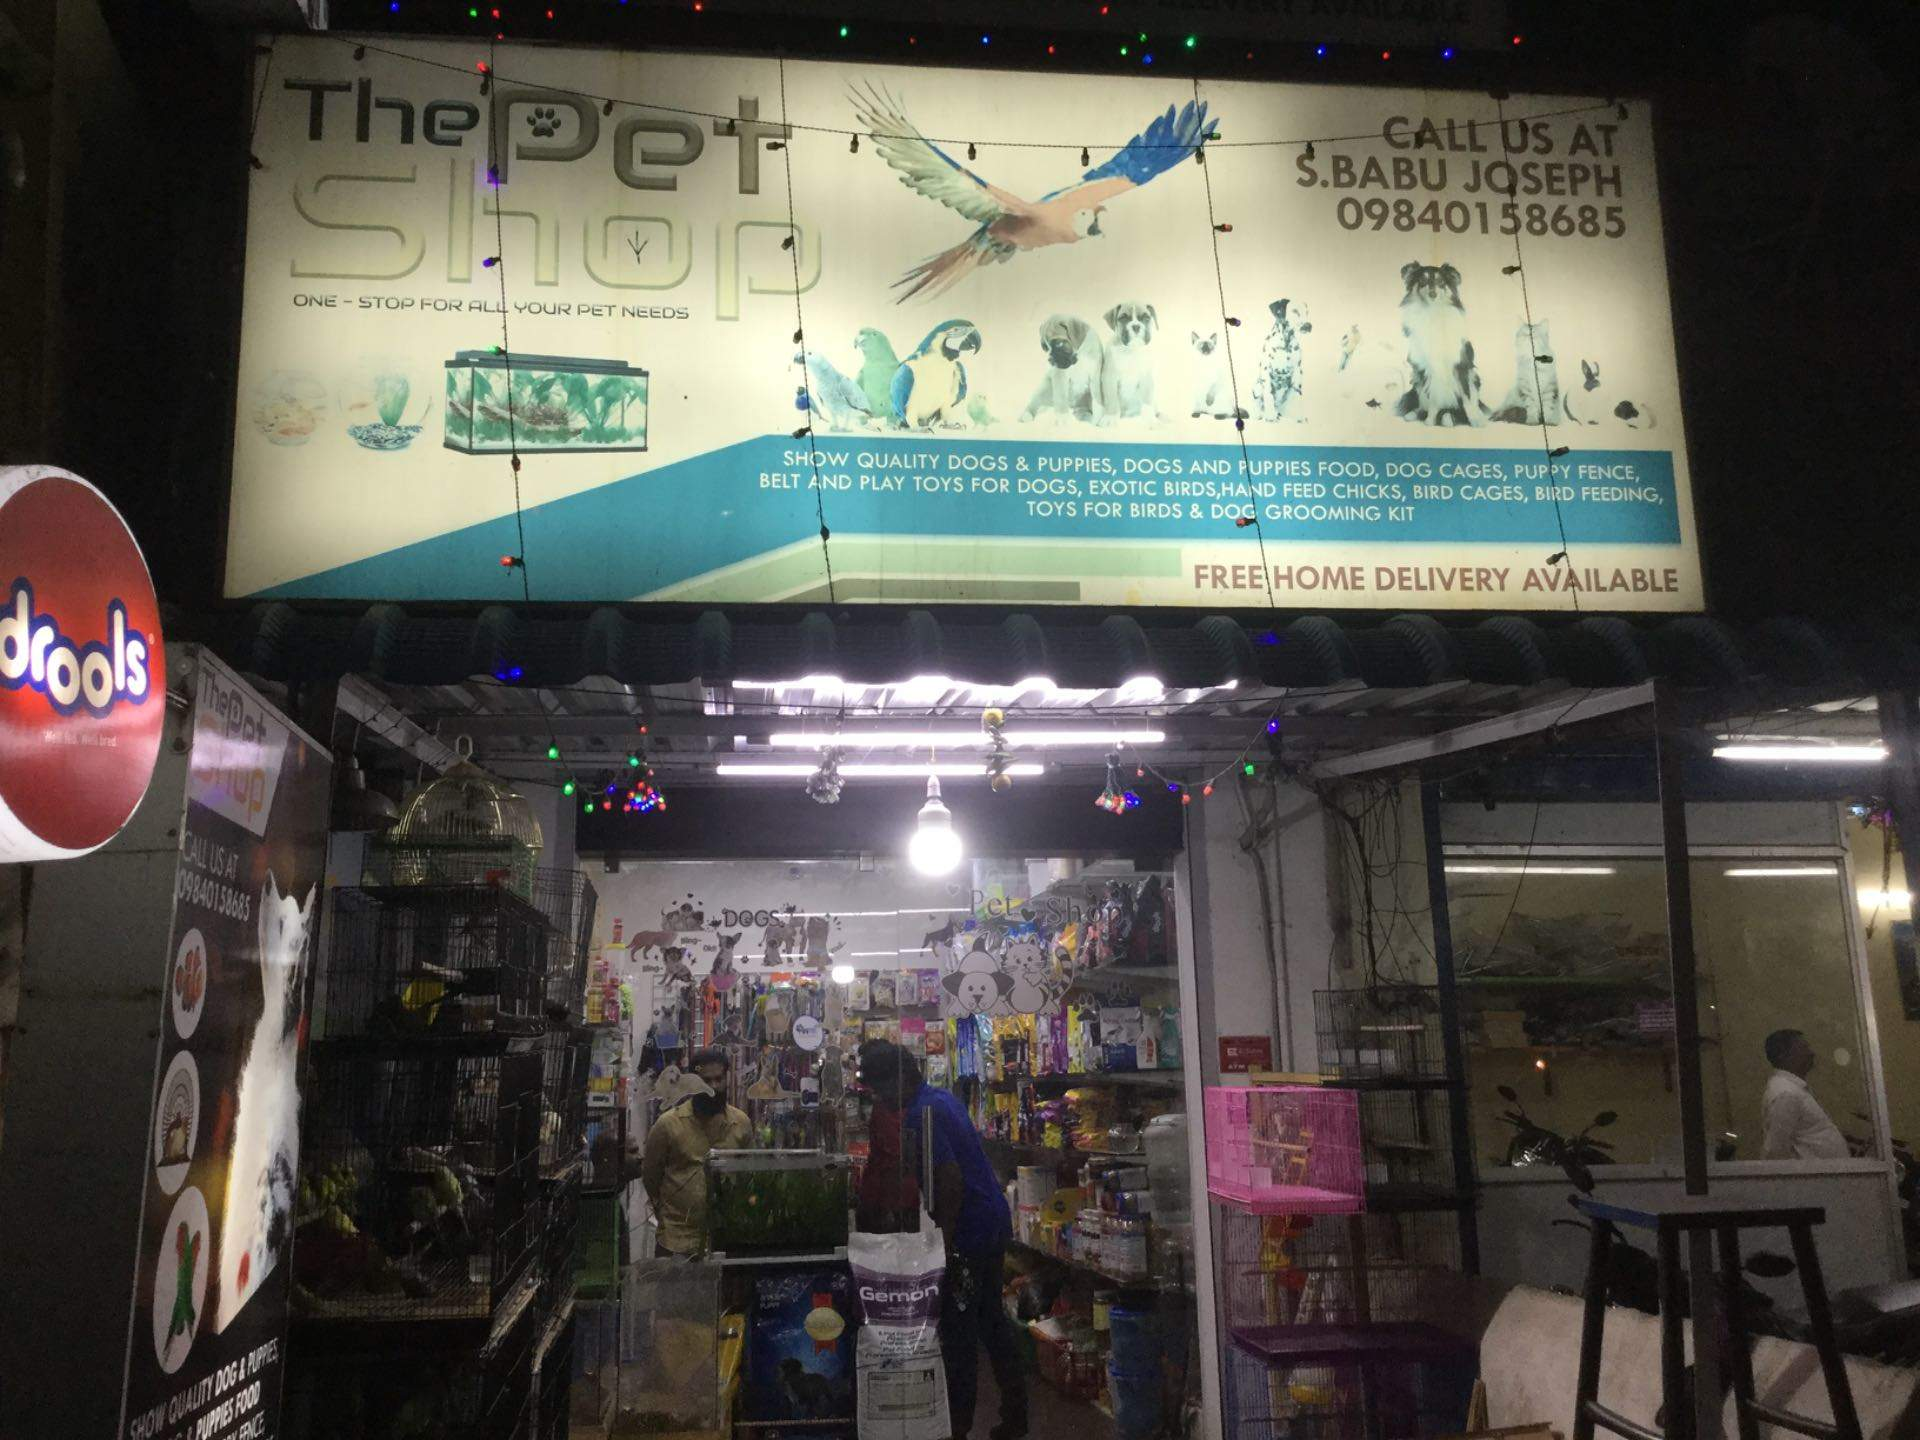 Top 50 Pet Shops For Exotic Birds in Chennai - Best Pet Stores For